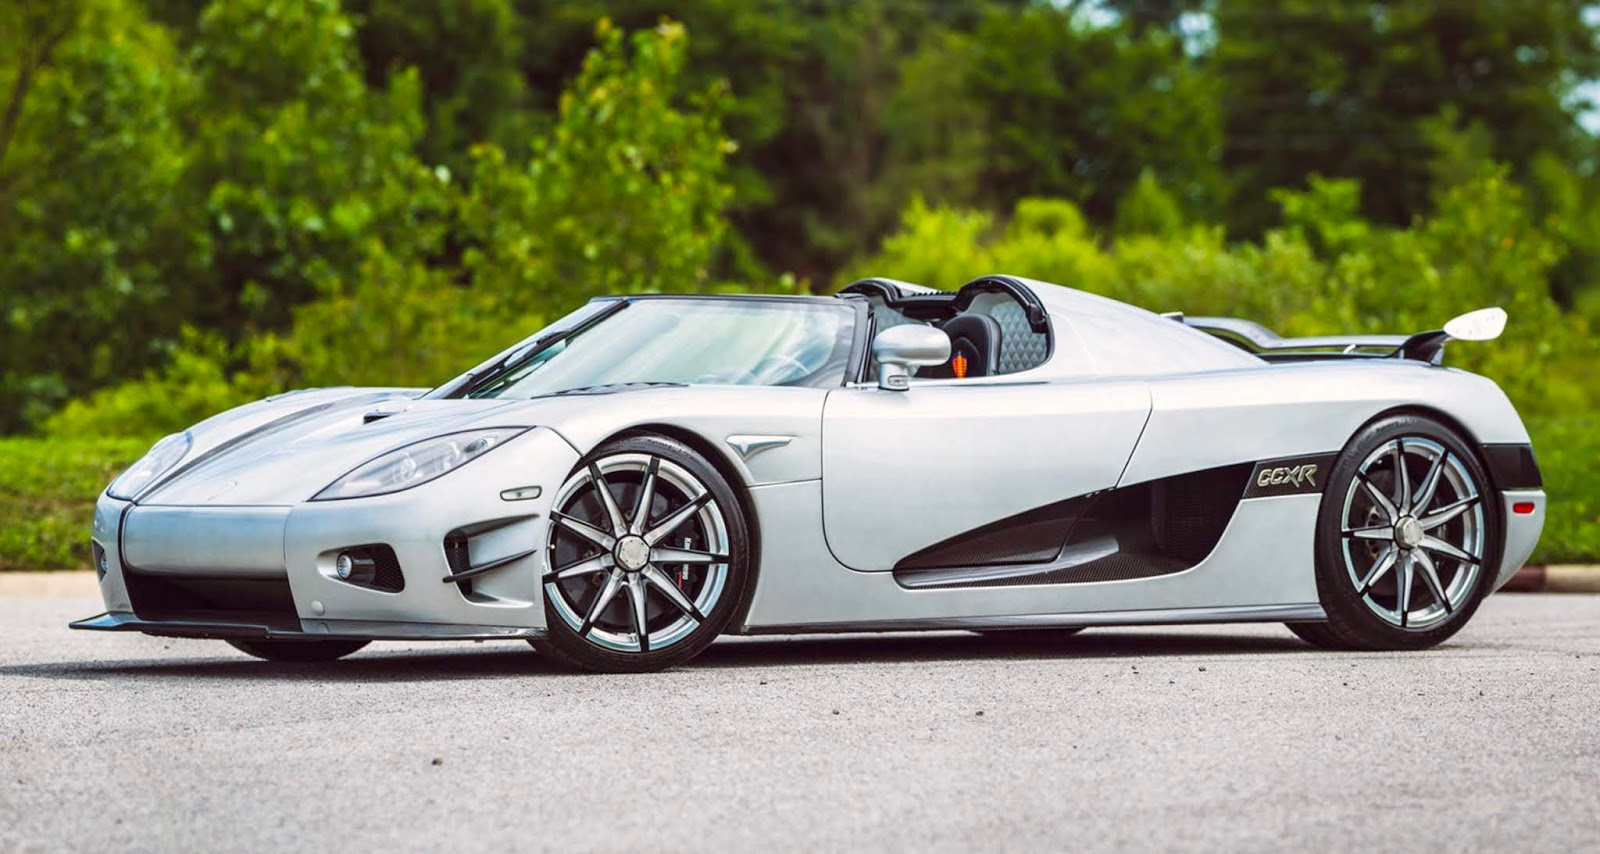 Koenigsegg CCXR Trevita: $4.8 Million